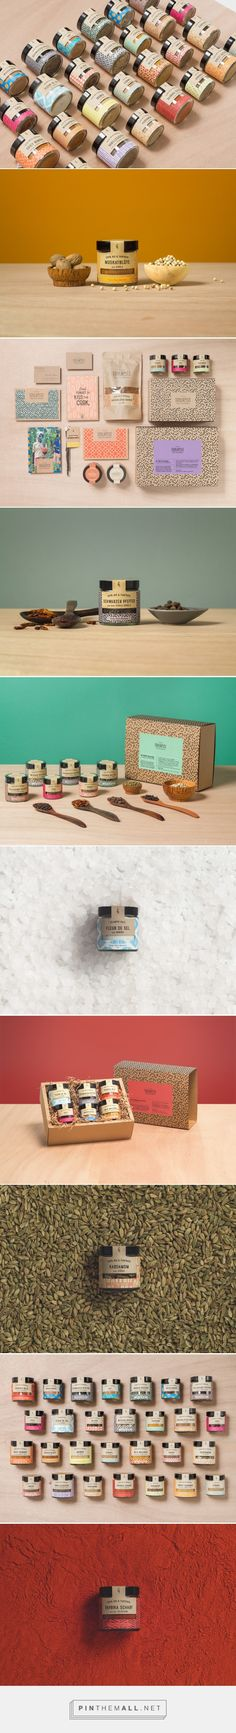 SoulSpice packaging design by studiograu - http://www.packagingoftheworld.com/2017/11/soulspice-taste-that-matters.html